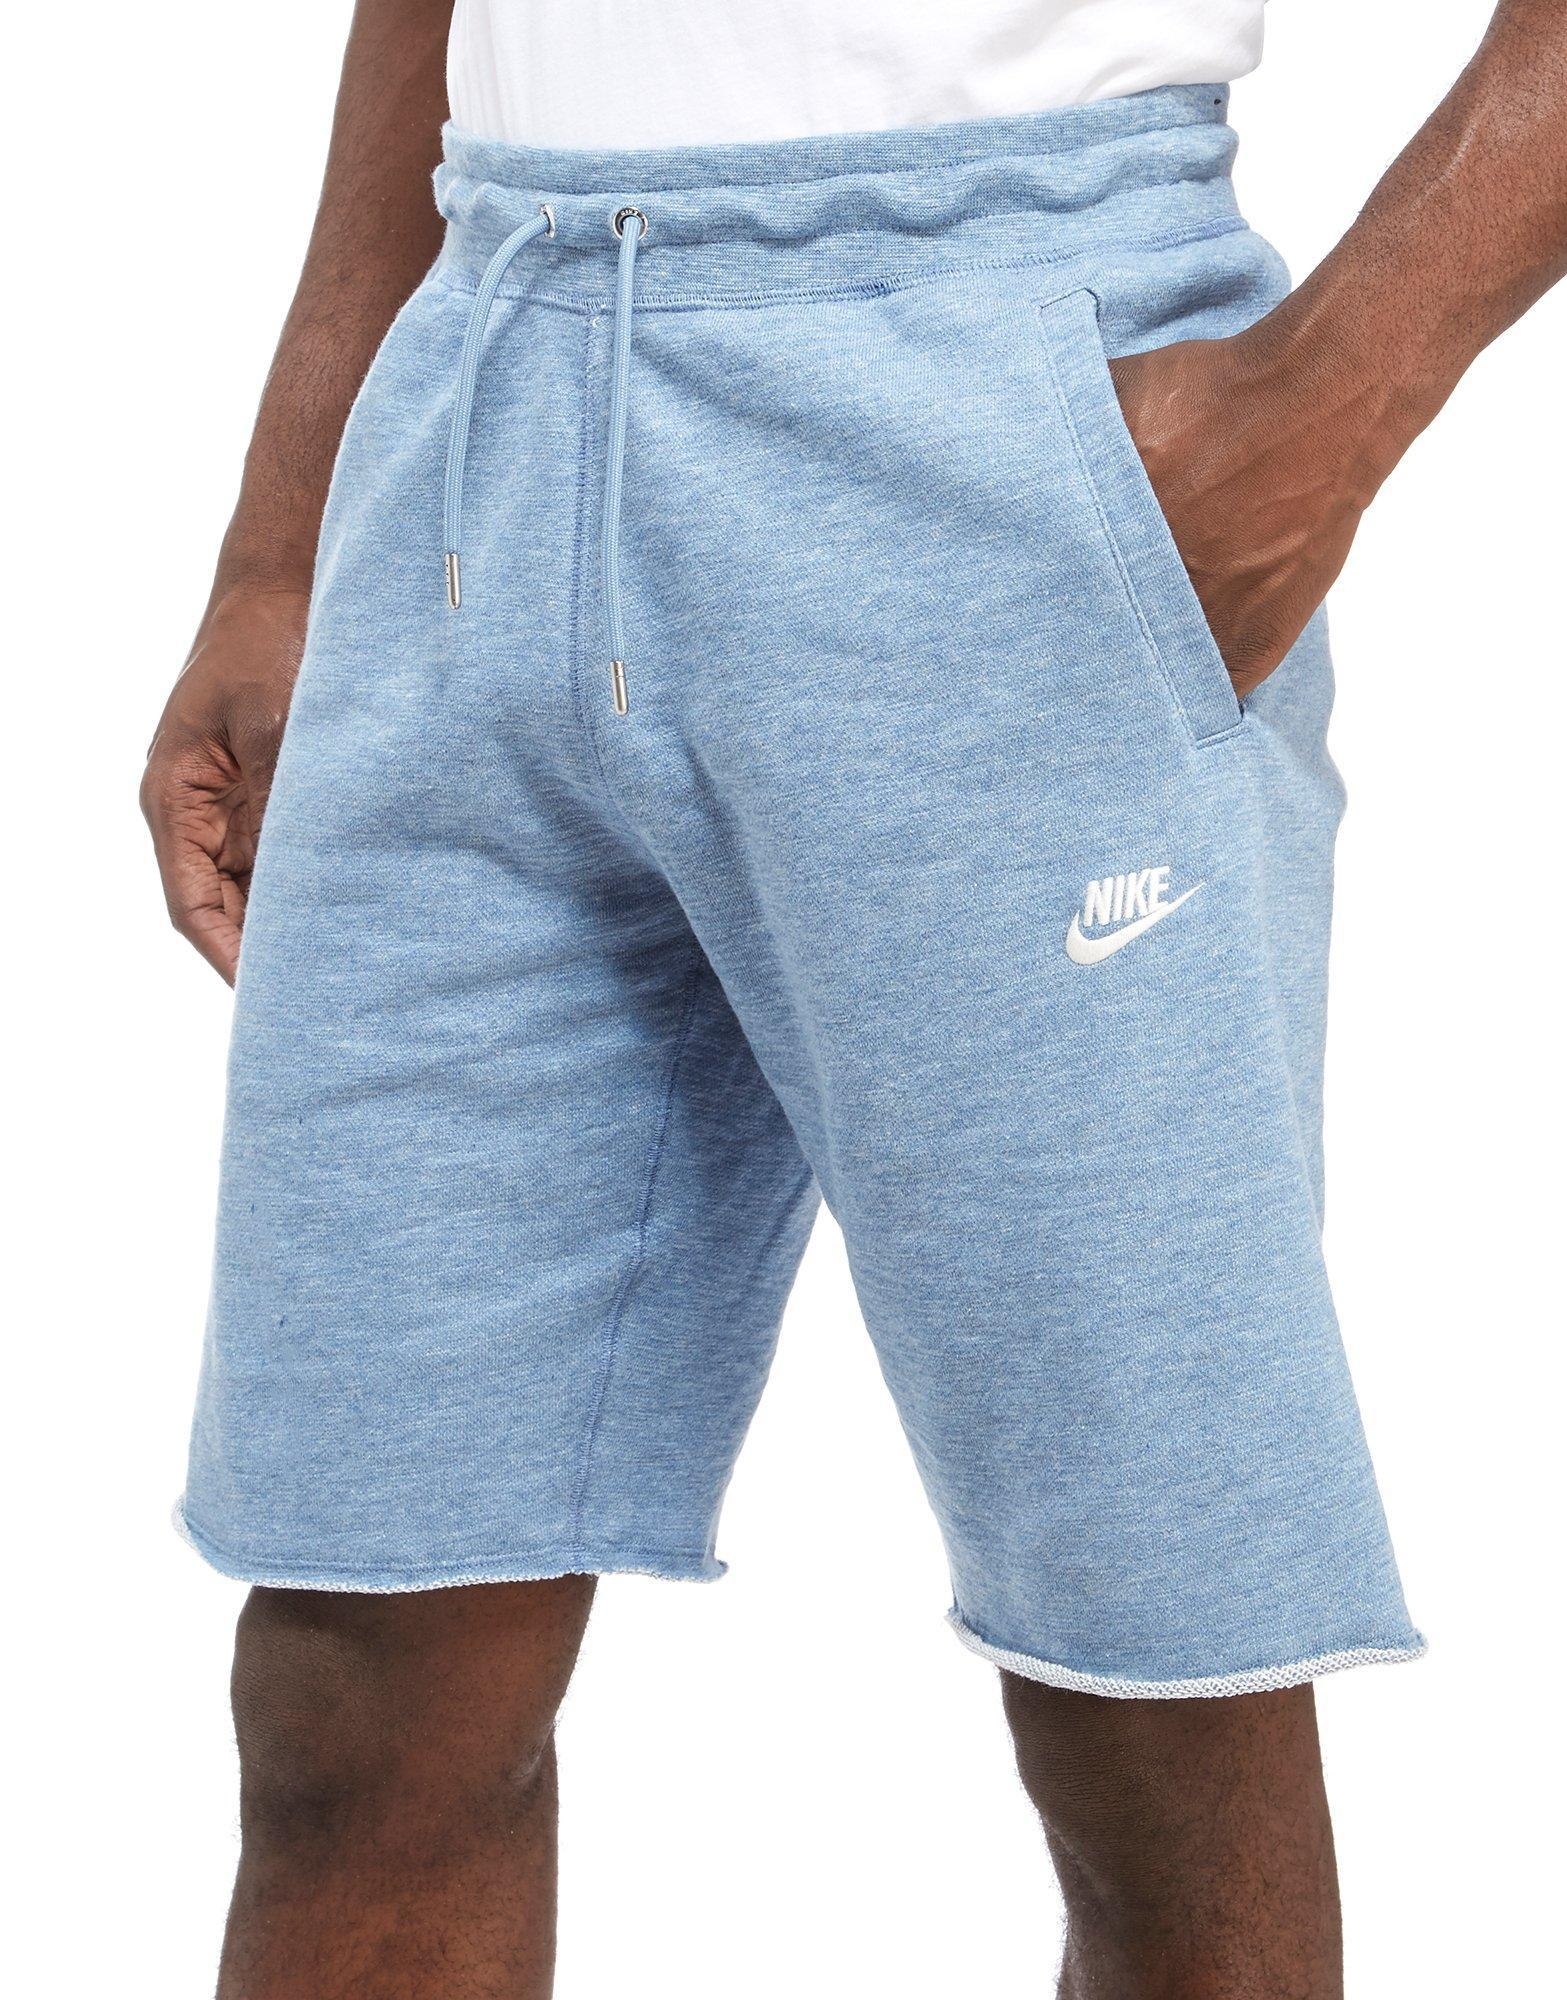 Nike Legacy Shorts in Blue for Men - Lyst